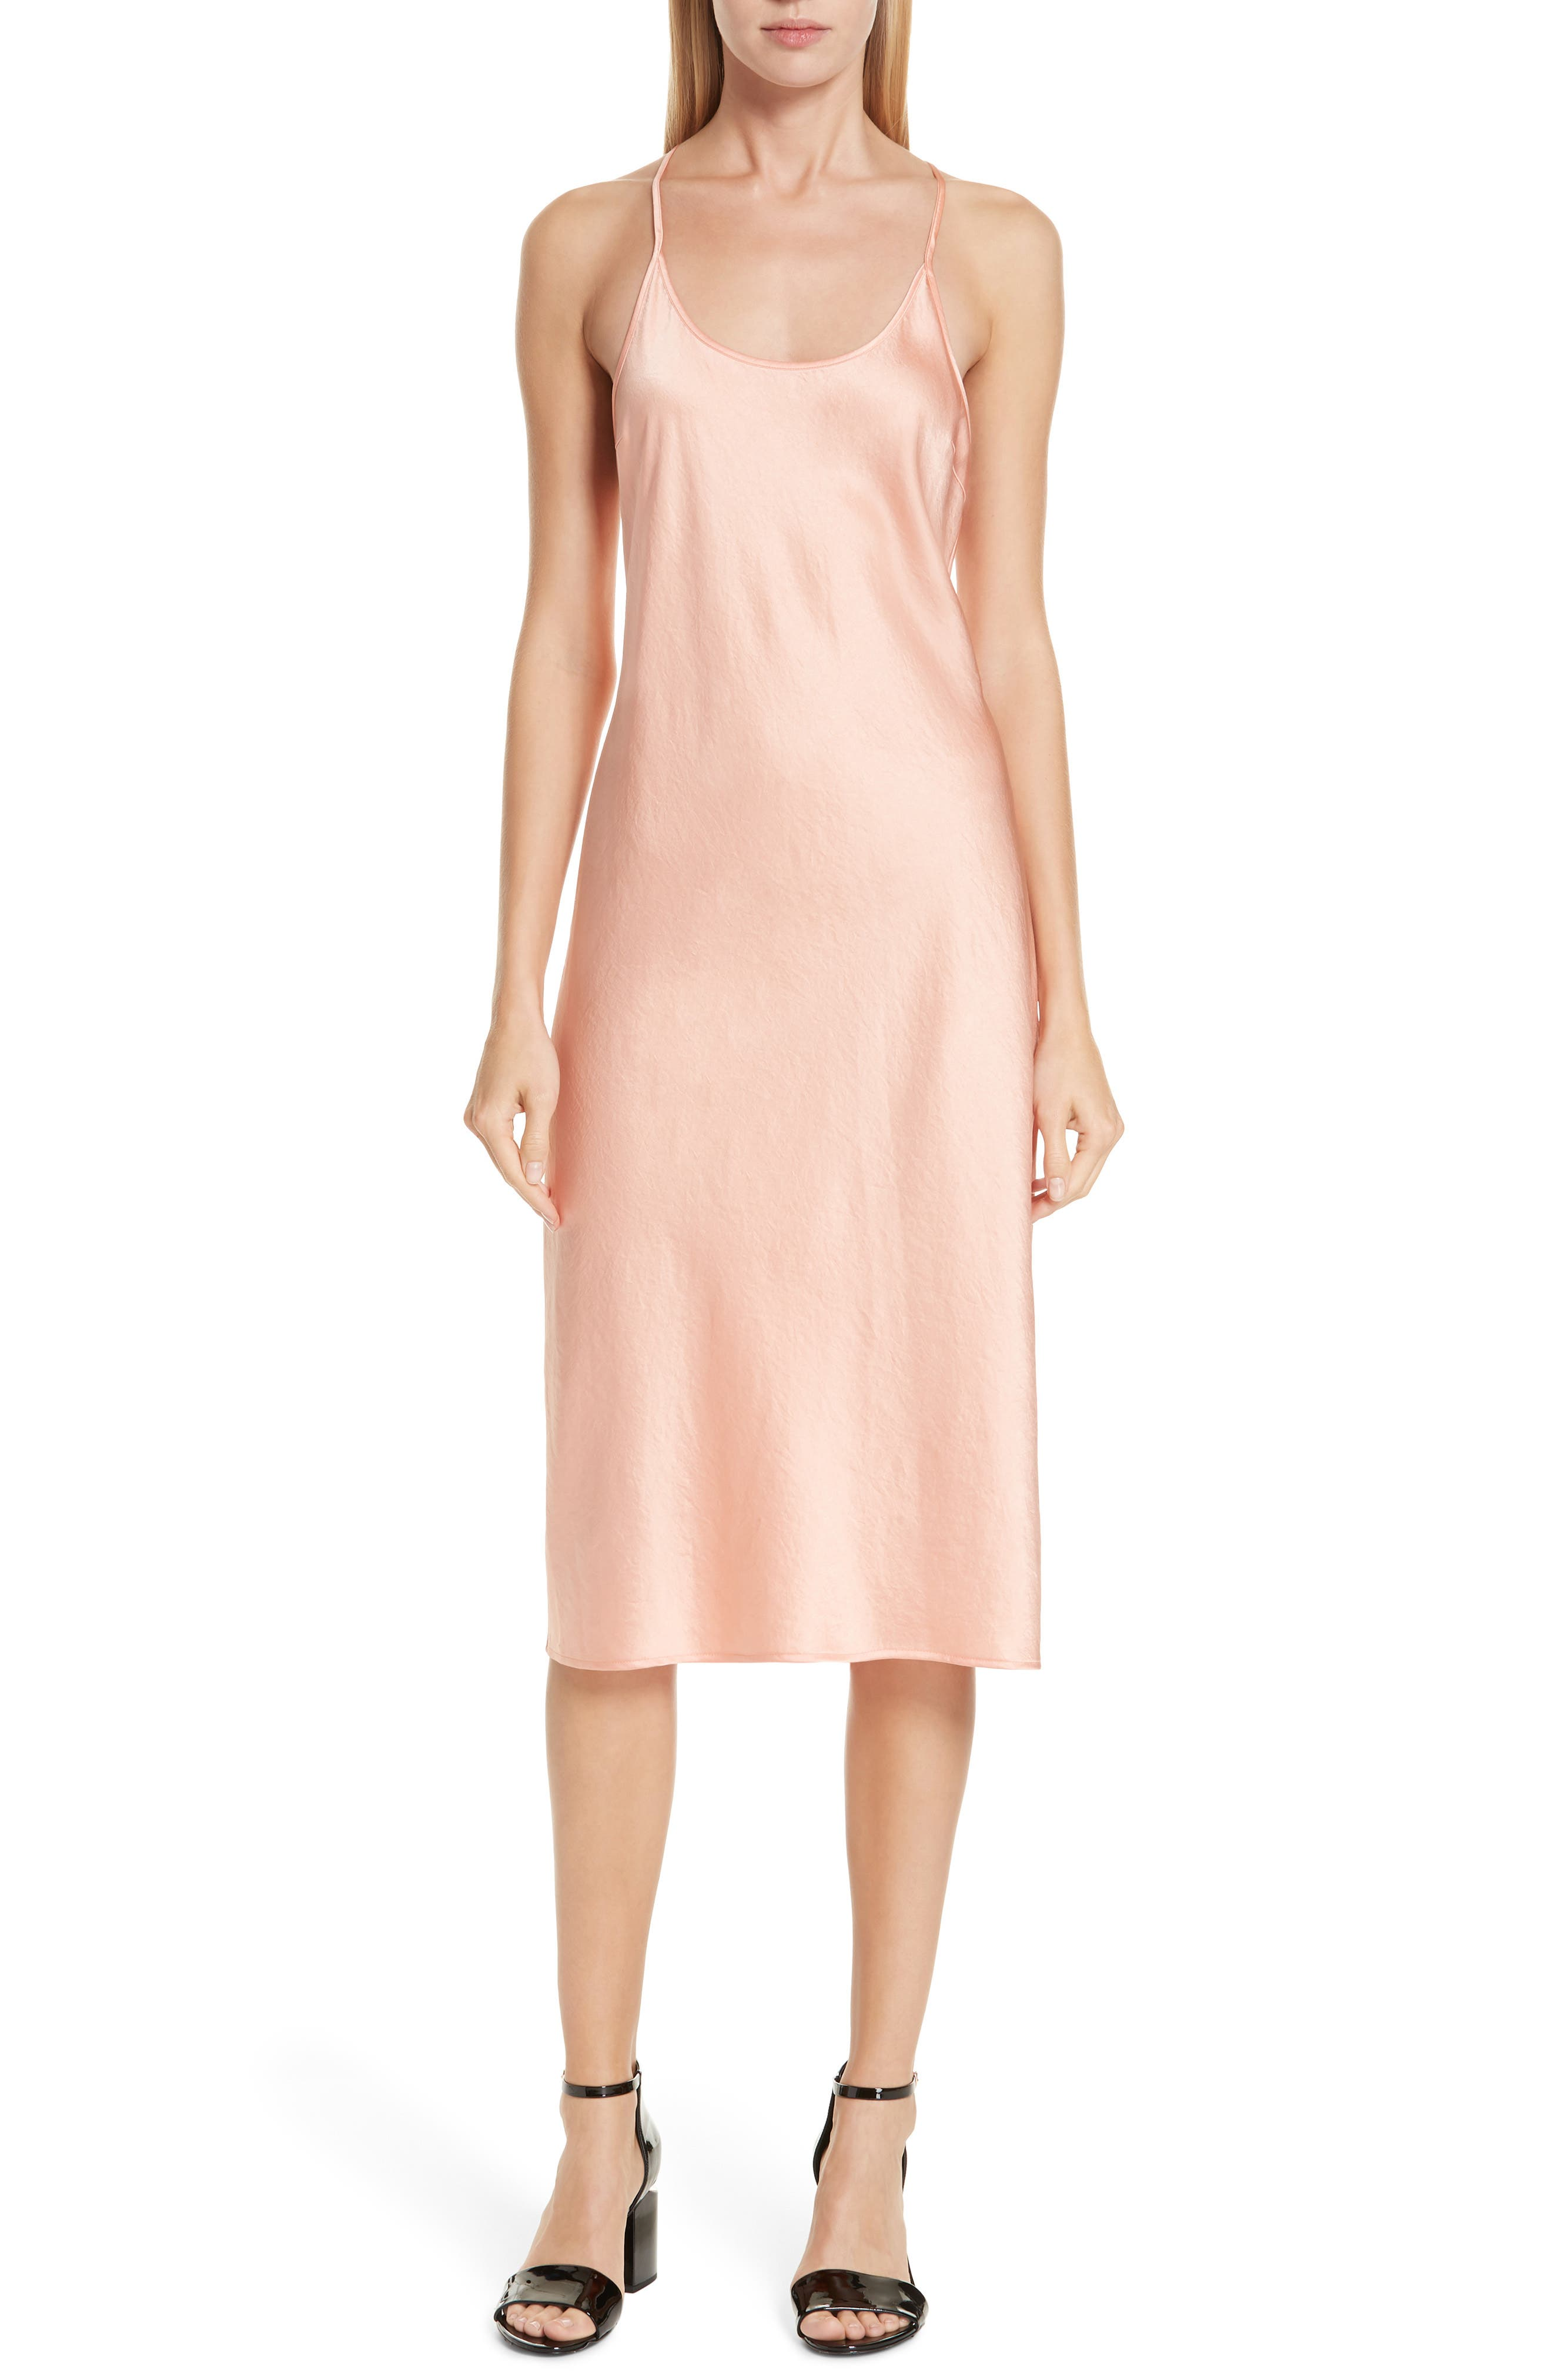 ALEXANDERWANG.T T By Alexander Wang Wash & Go Satin Slipdress in Papaya